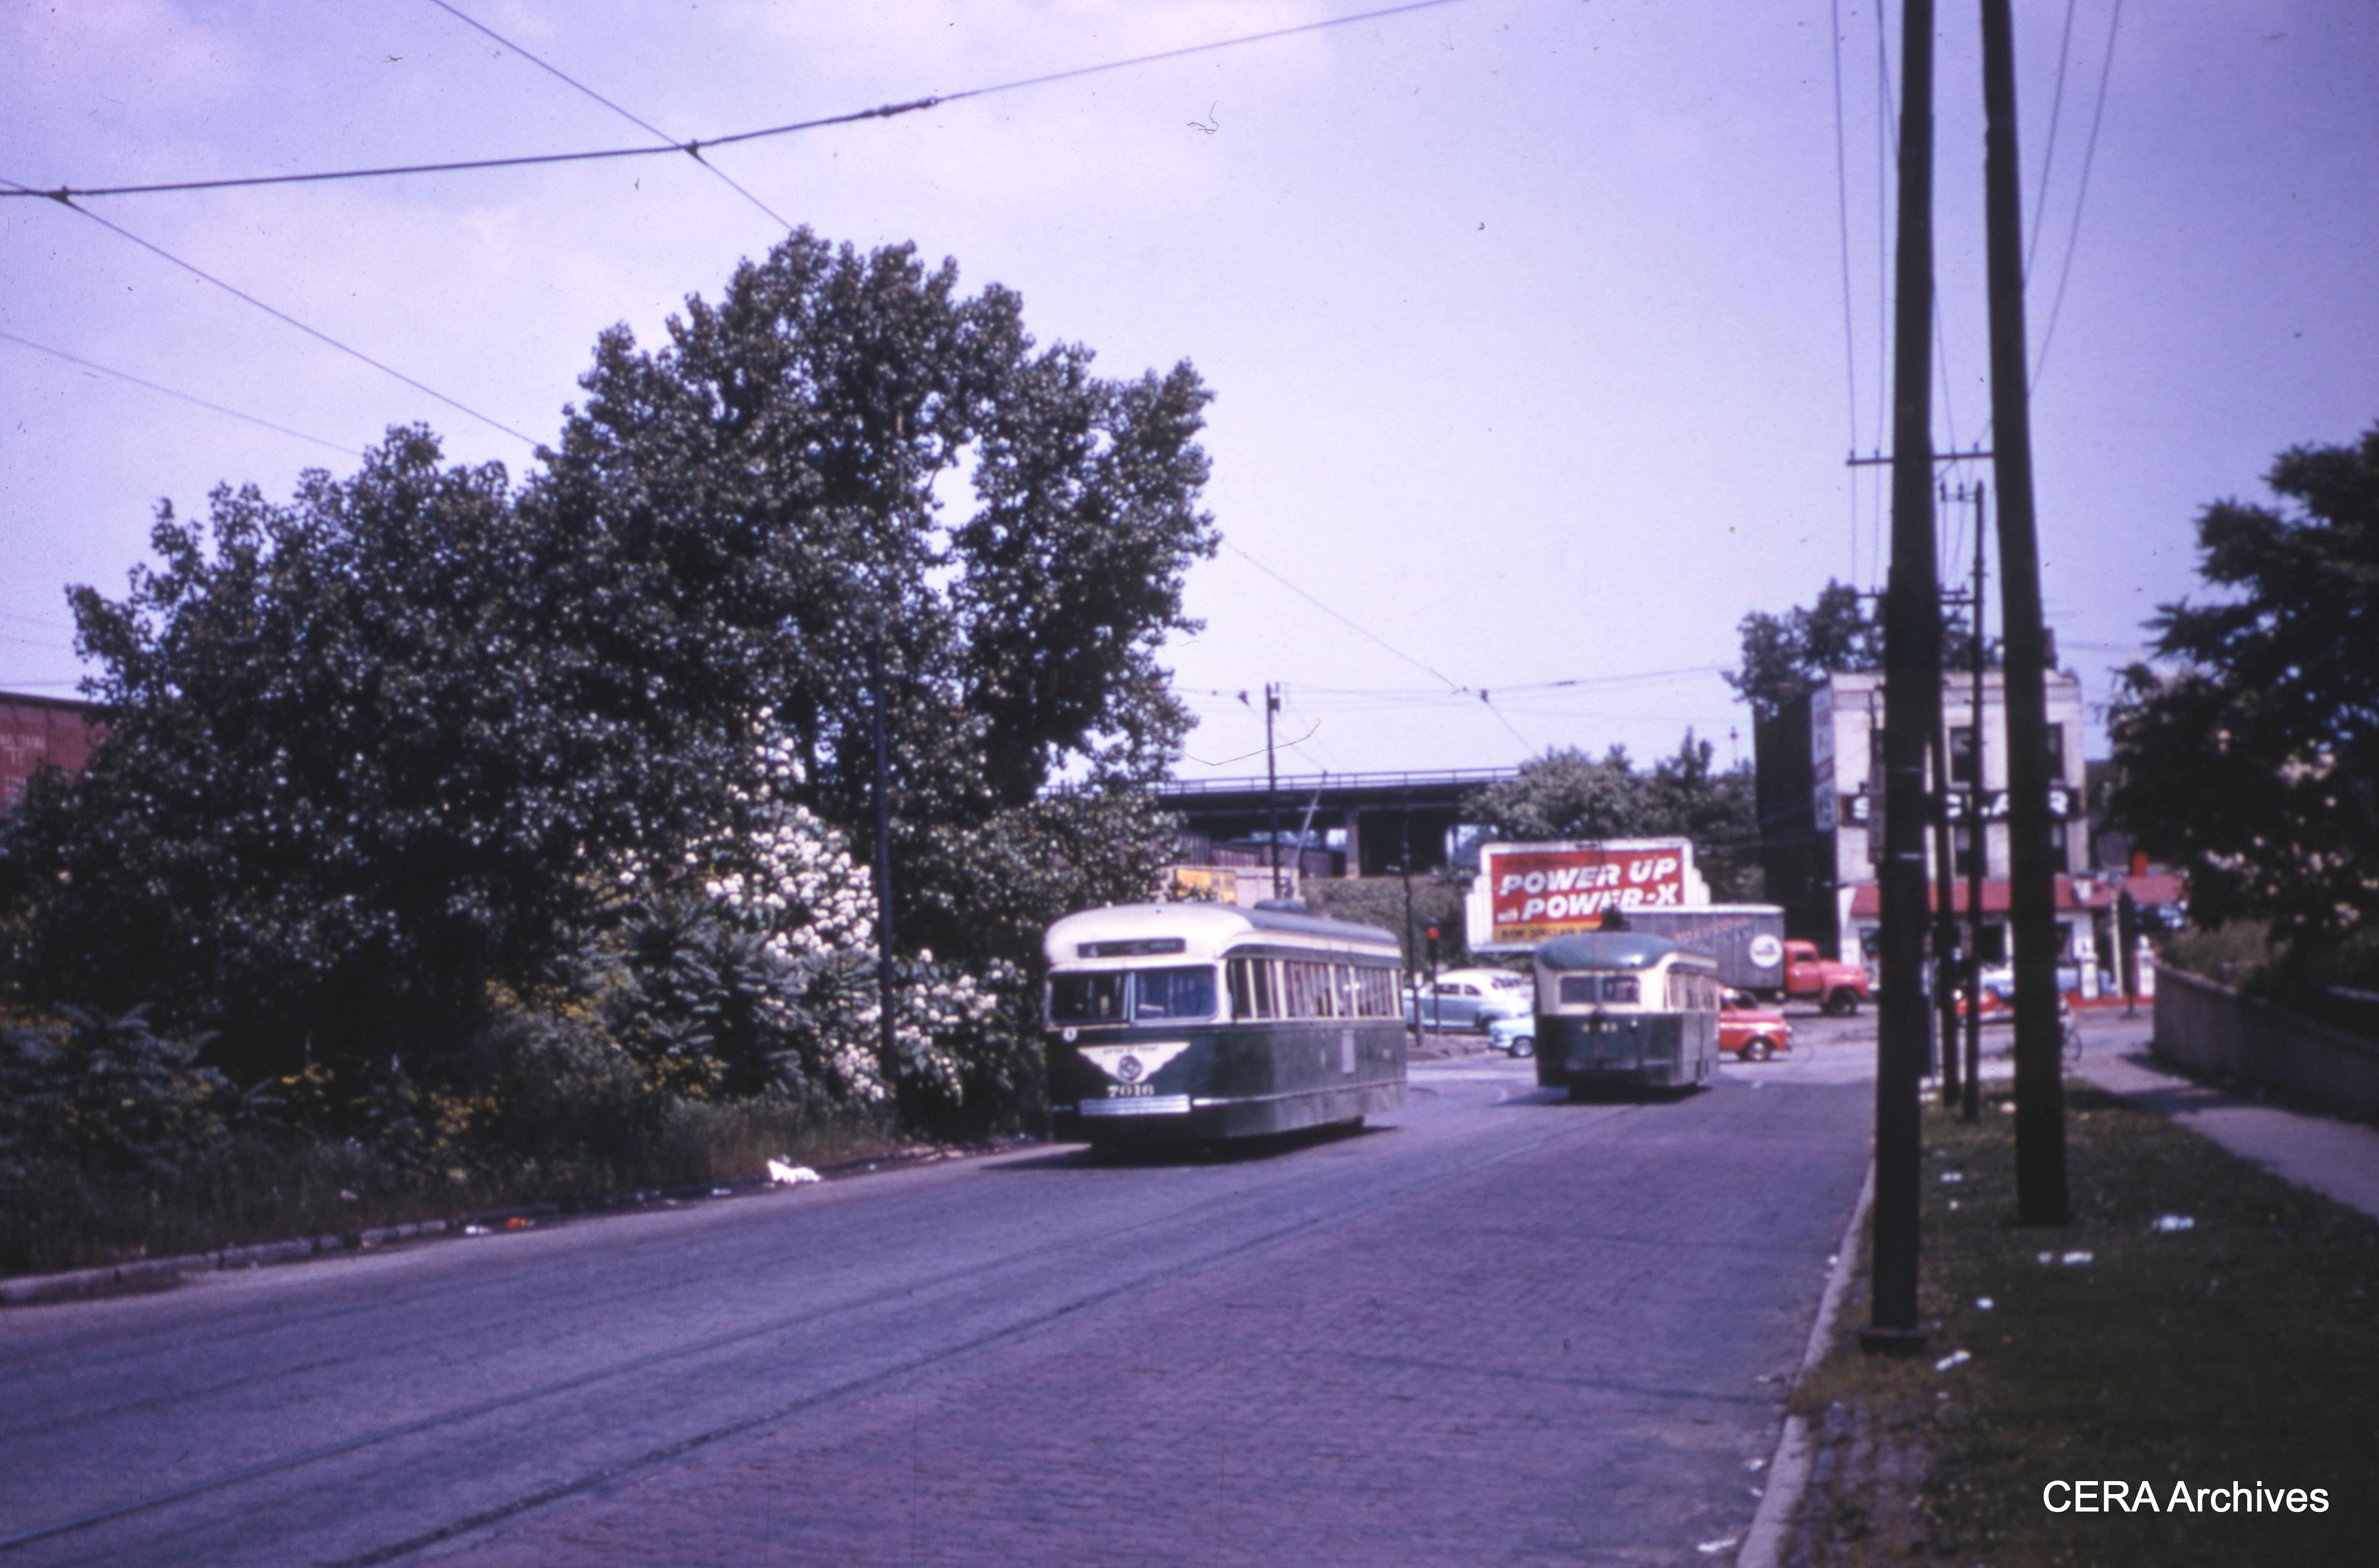 CTA Pre War PCC 7016 On Cottage Grove Looking North Toward 95th Street The Car Will Enter Private Right Of Way Paralleling Roadway Just Behind